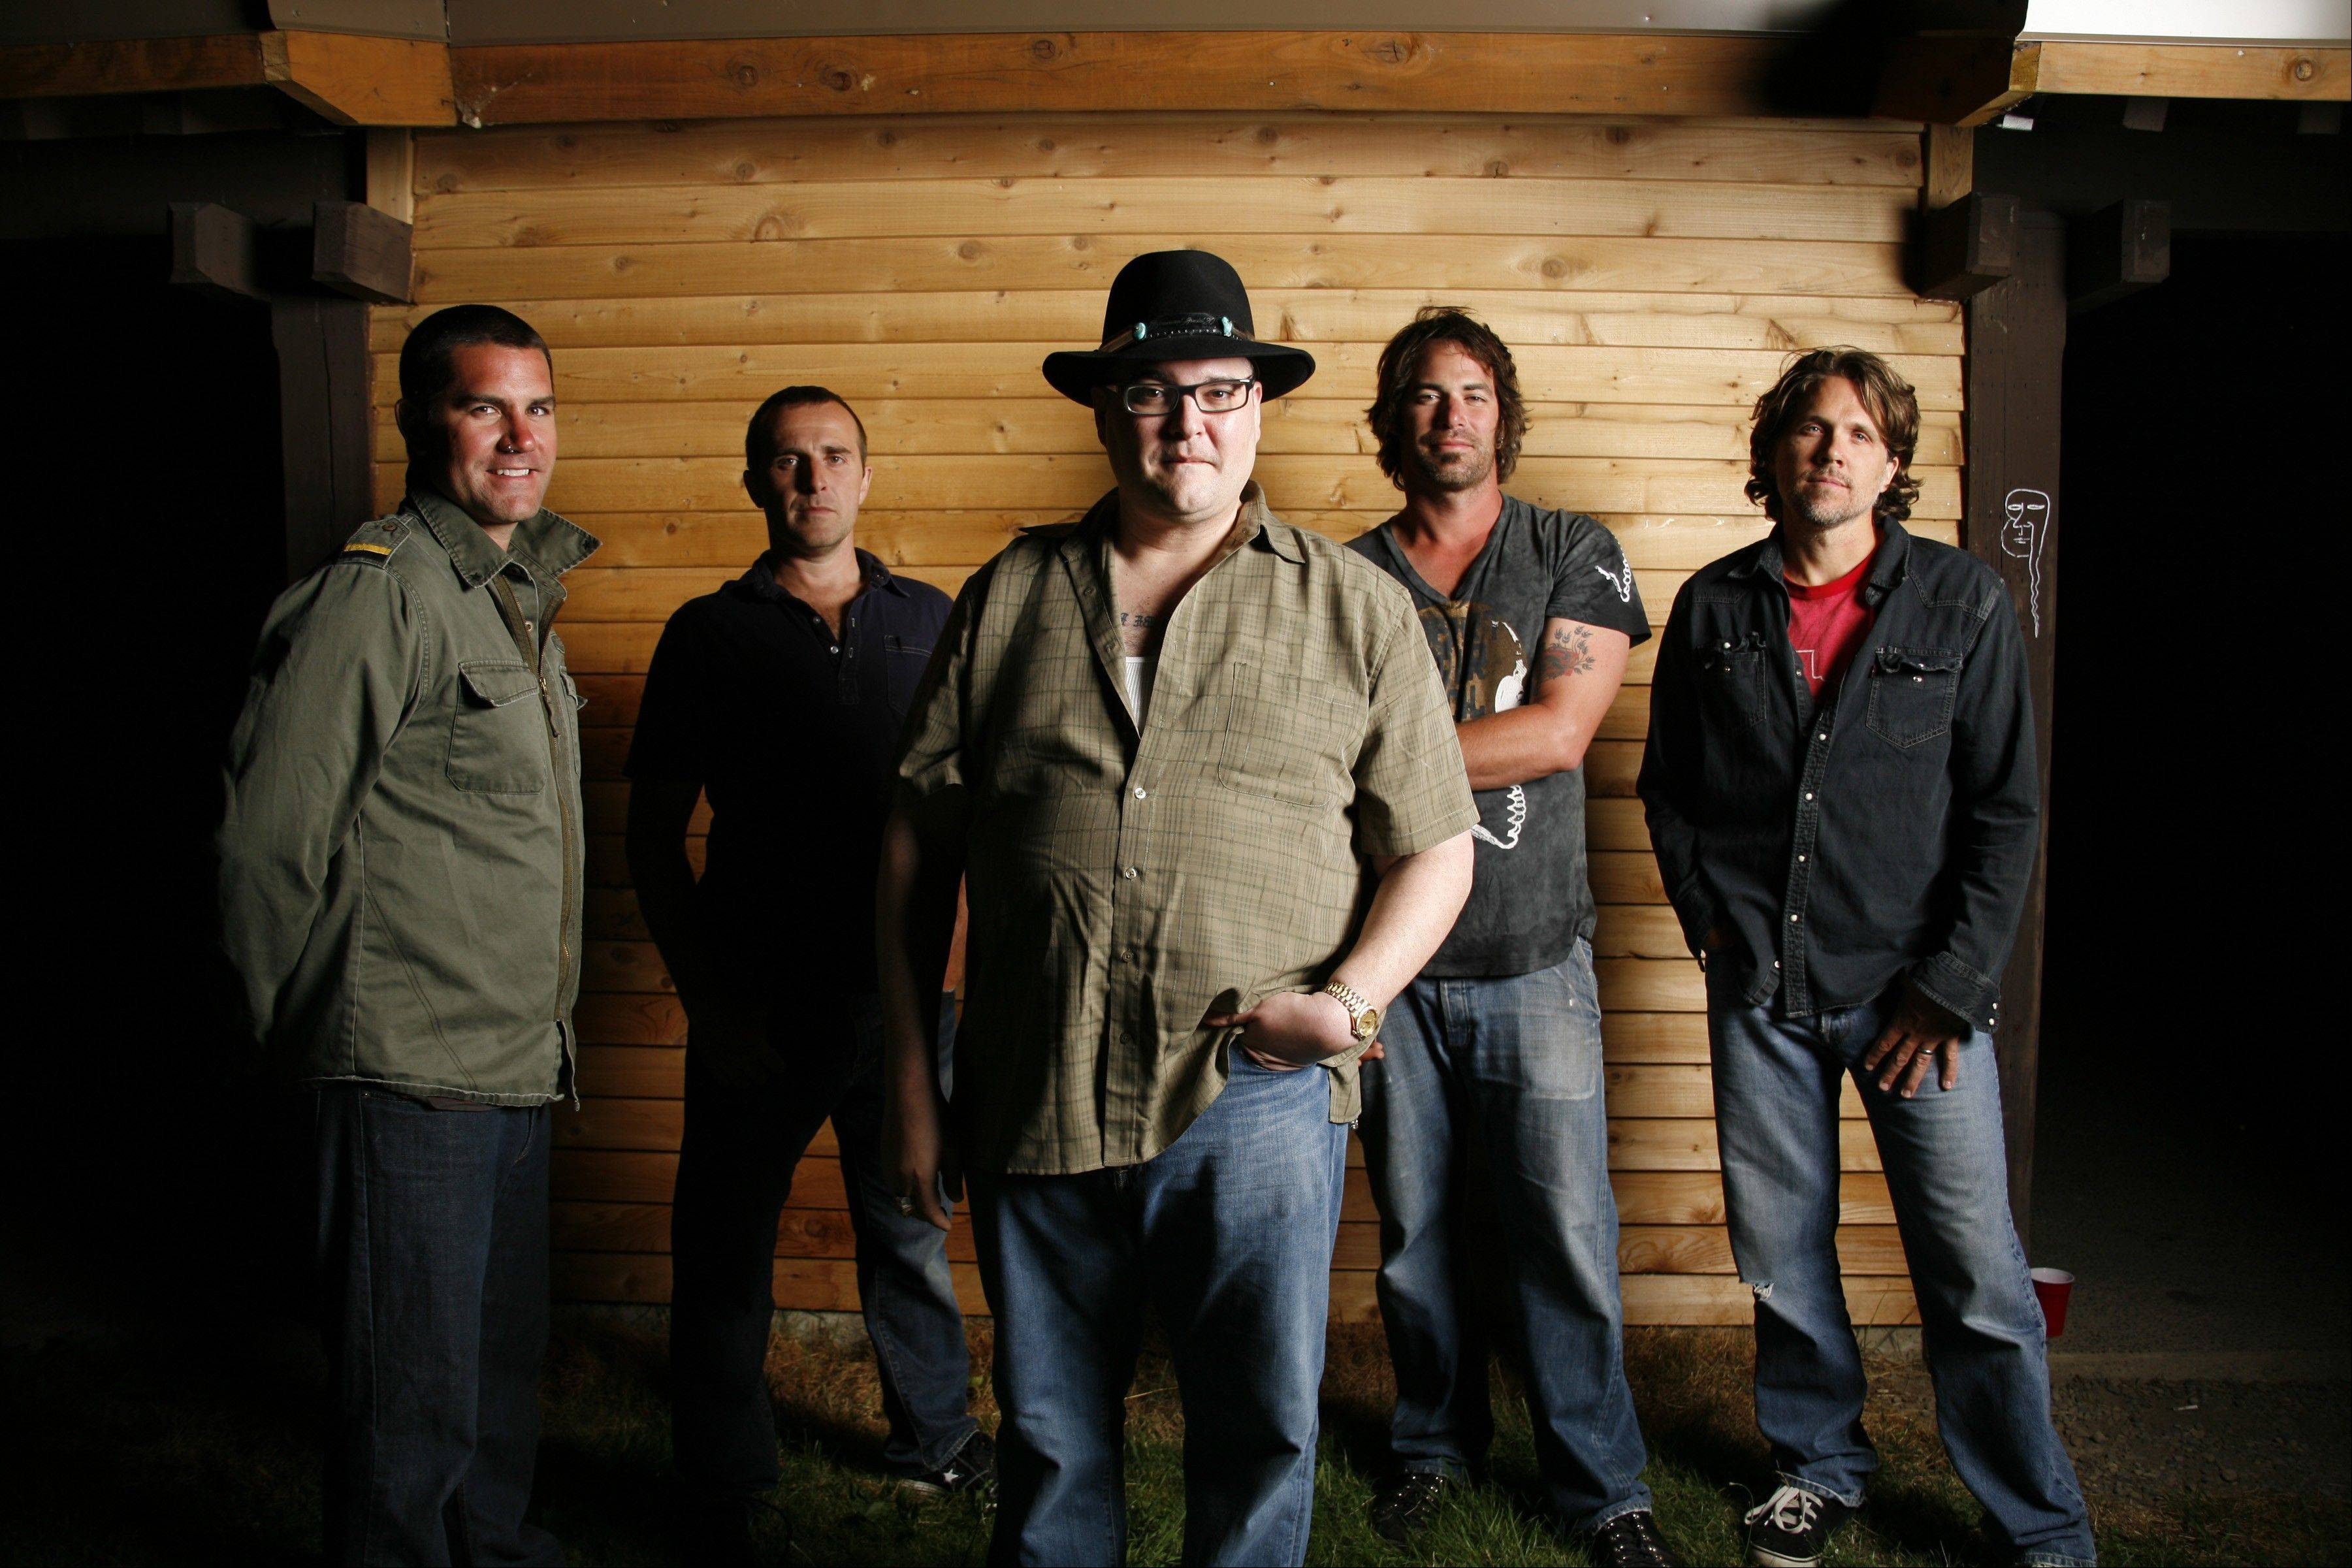 Rock legend Blues Traveler comes to Crystal Lake on Sunday, Aug. 21.